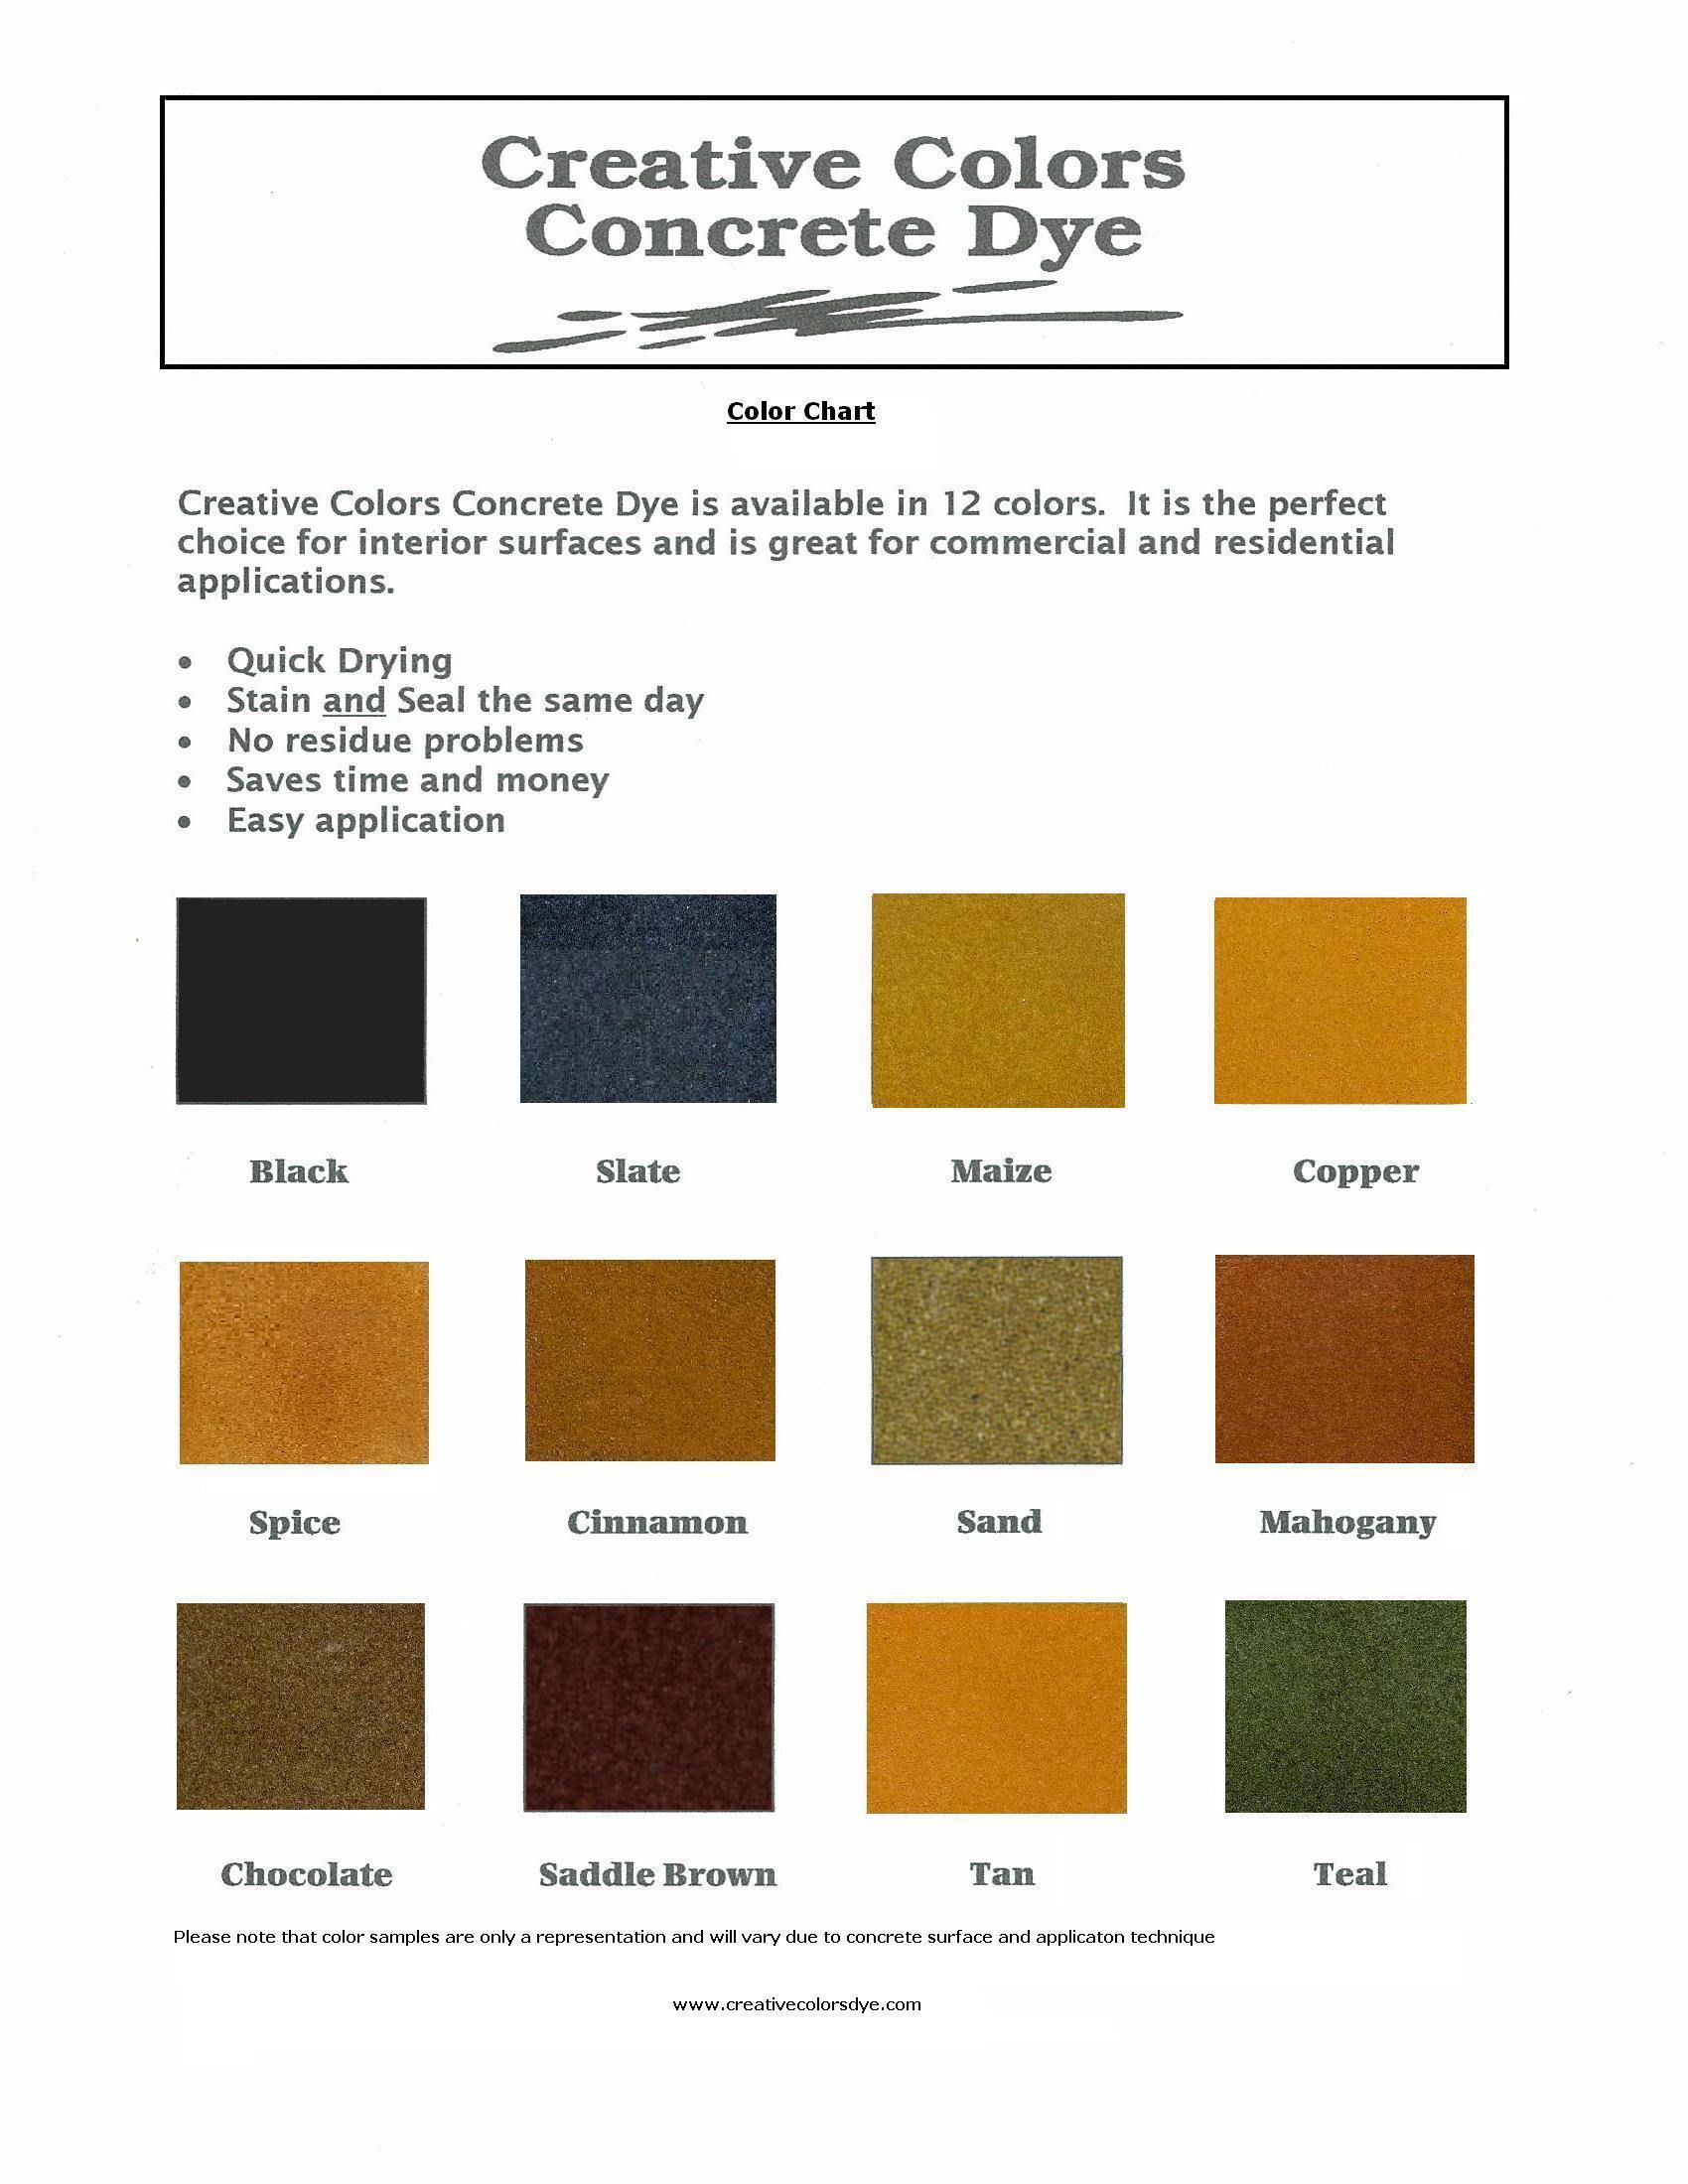 Concrete Dye Color Chart By Creative Colors Concrete Dye Creative Colour Concrete Decor